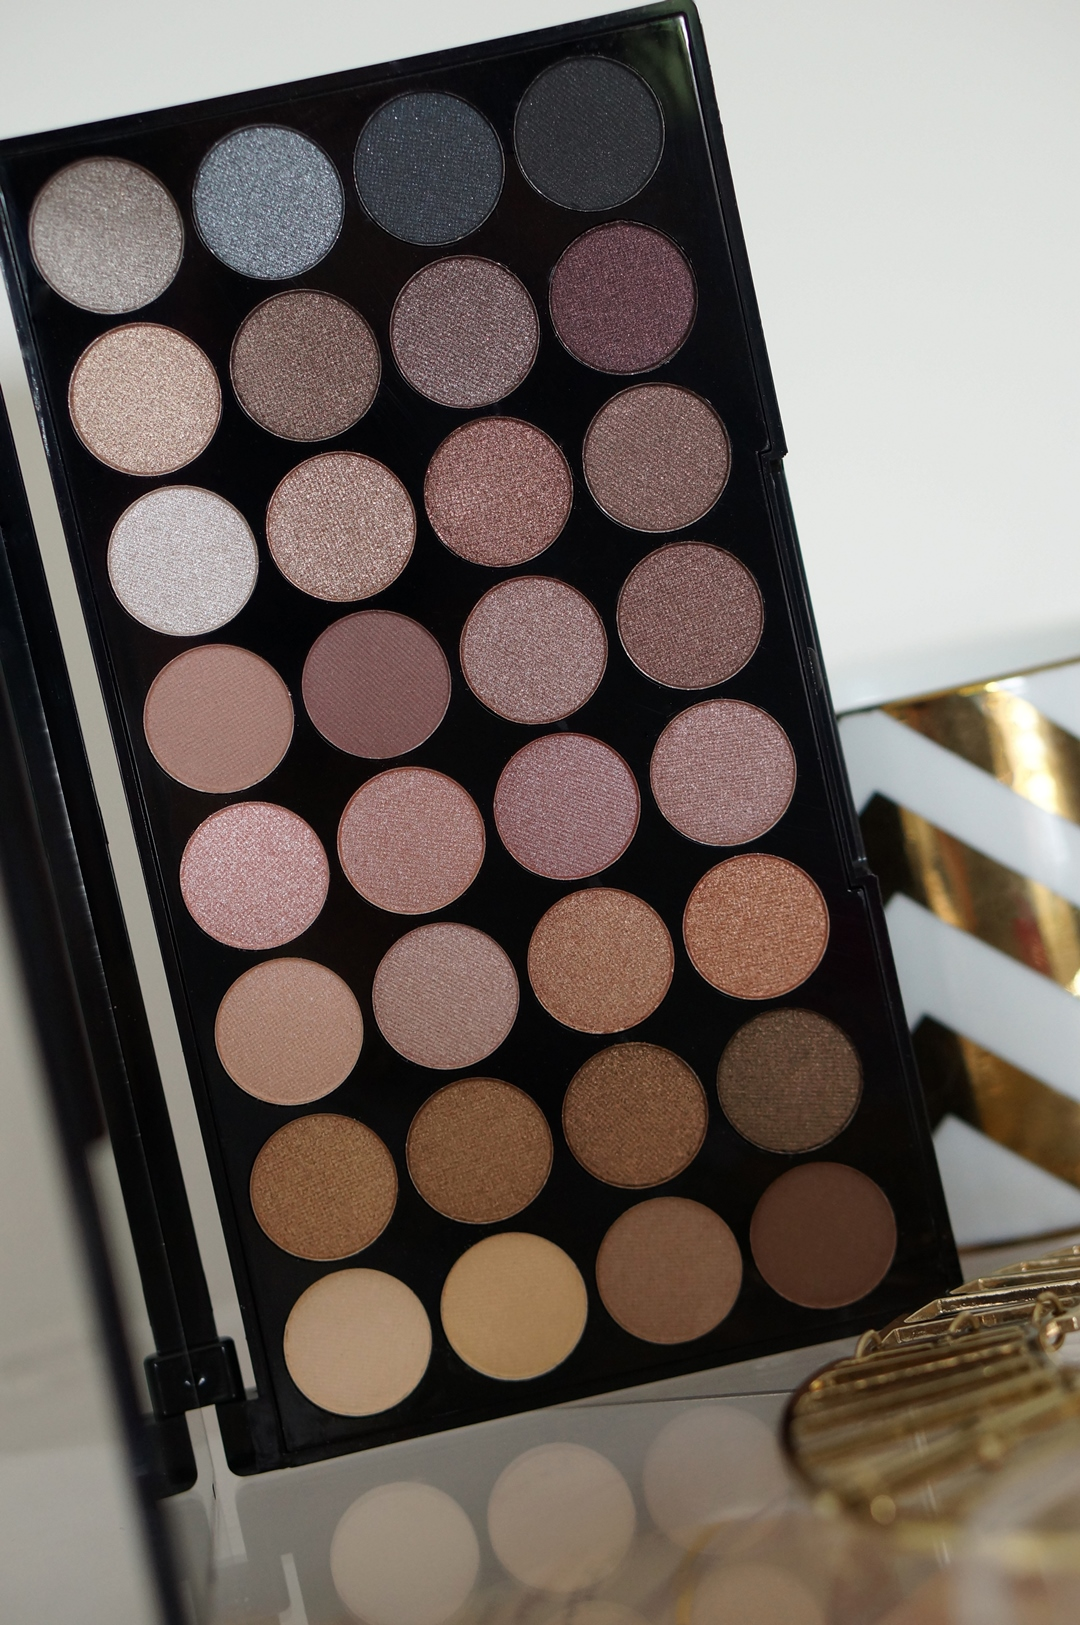 Makeup-revolution-beyond-flawless-ultra-eyeshadows-32 (5)